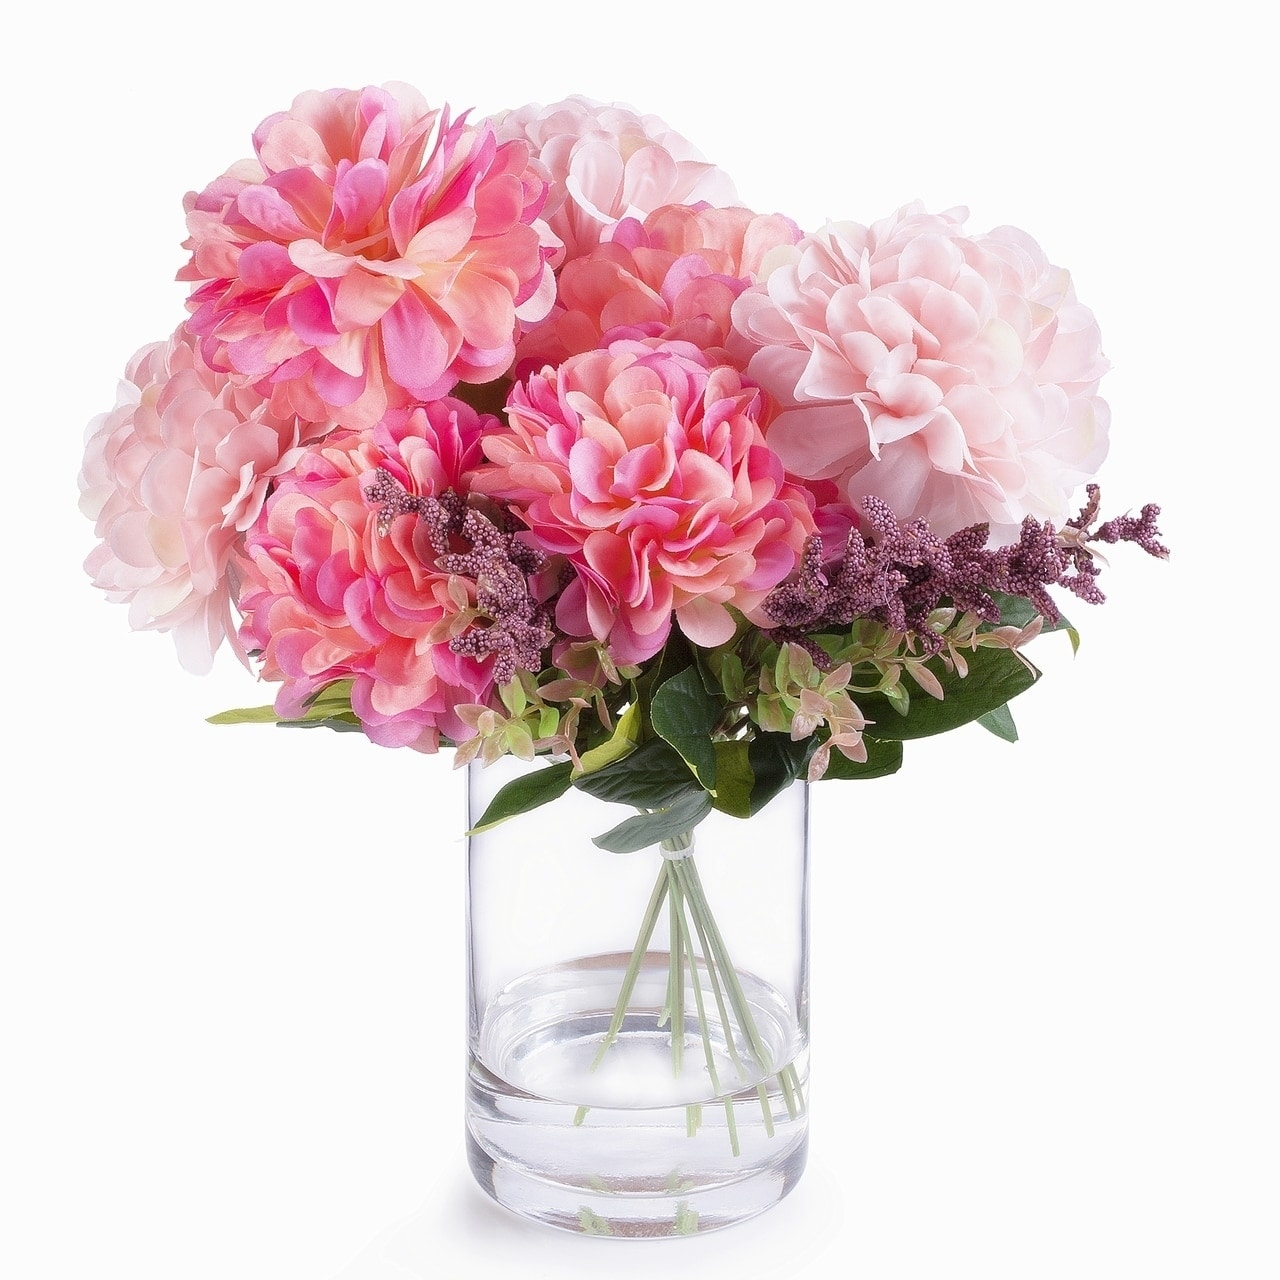 Shop Enova Home 7 Heads Pink Mixed Dahlia Silk Flower Arrangement In Glass Vase With Faux Water Overstock 29075674